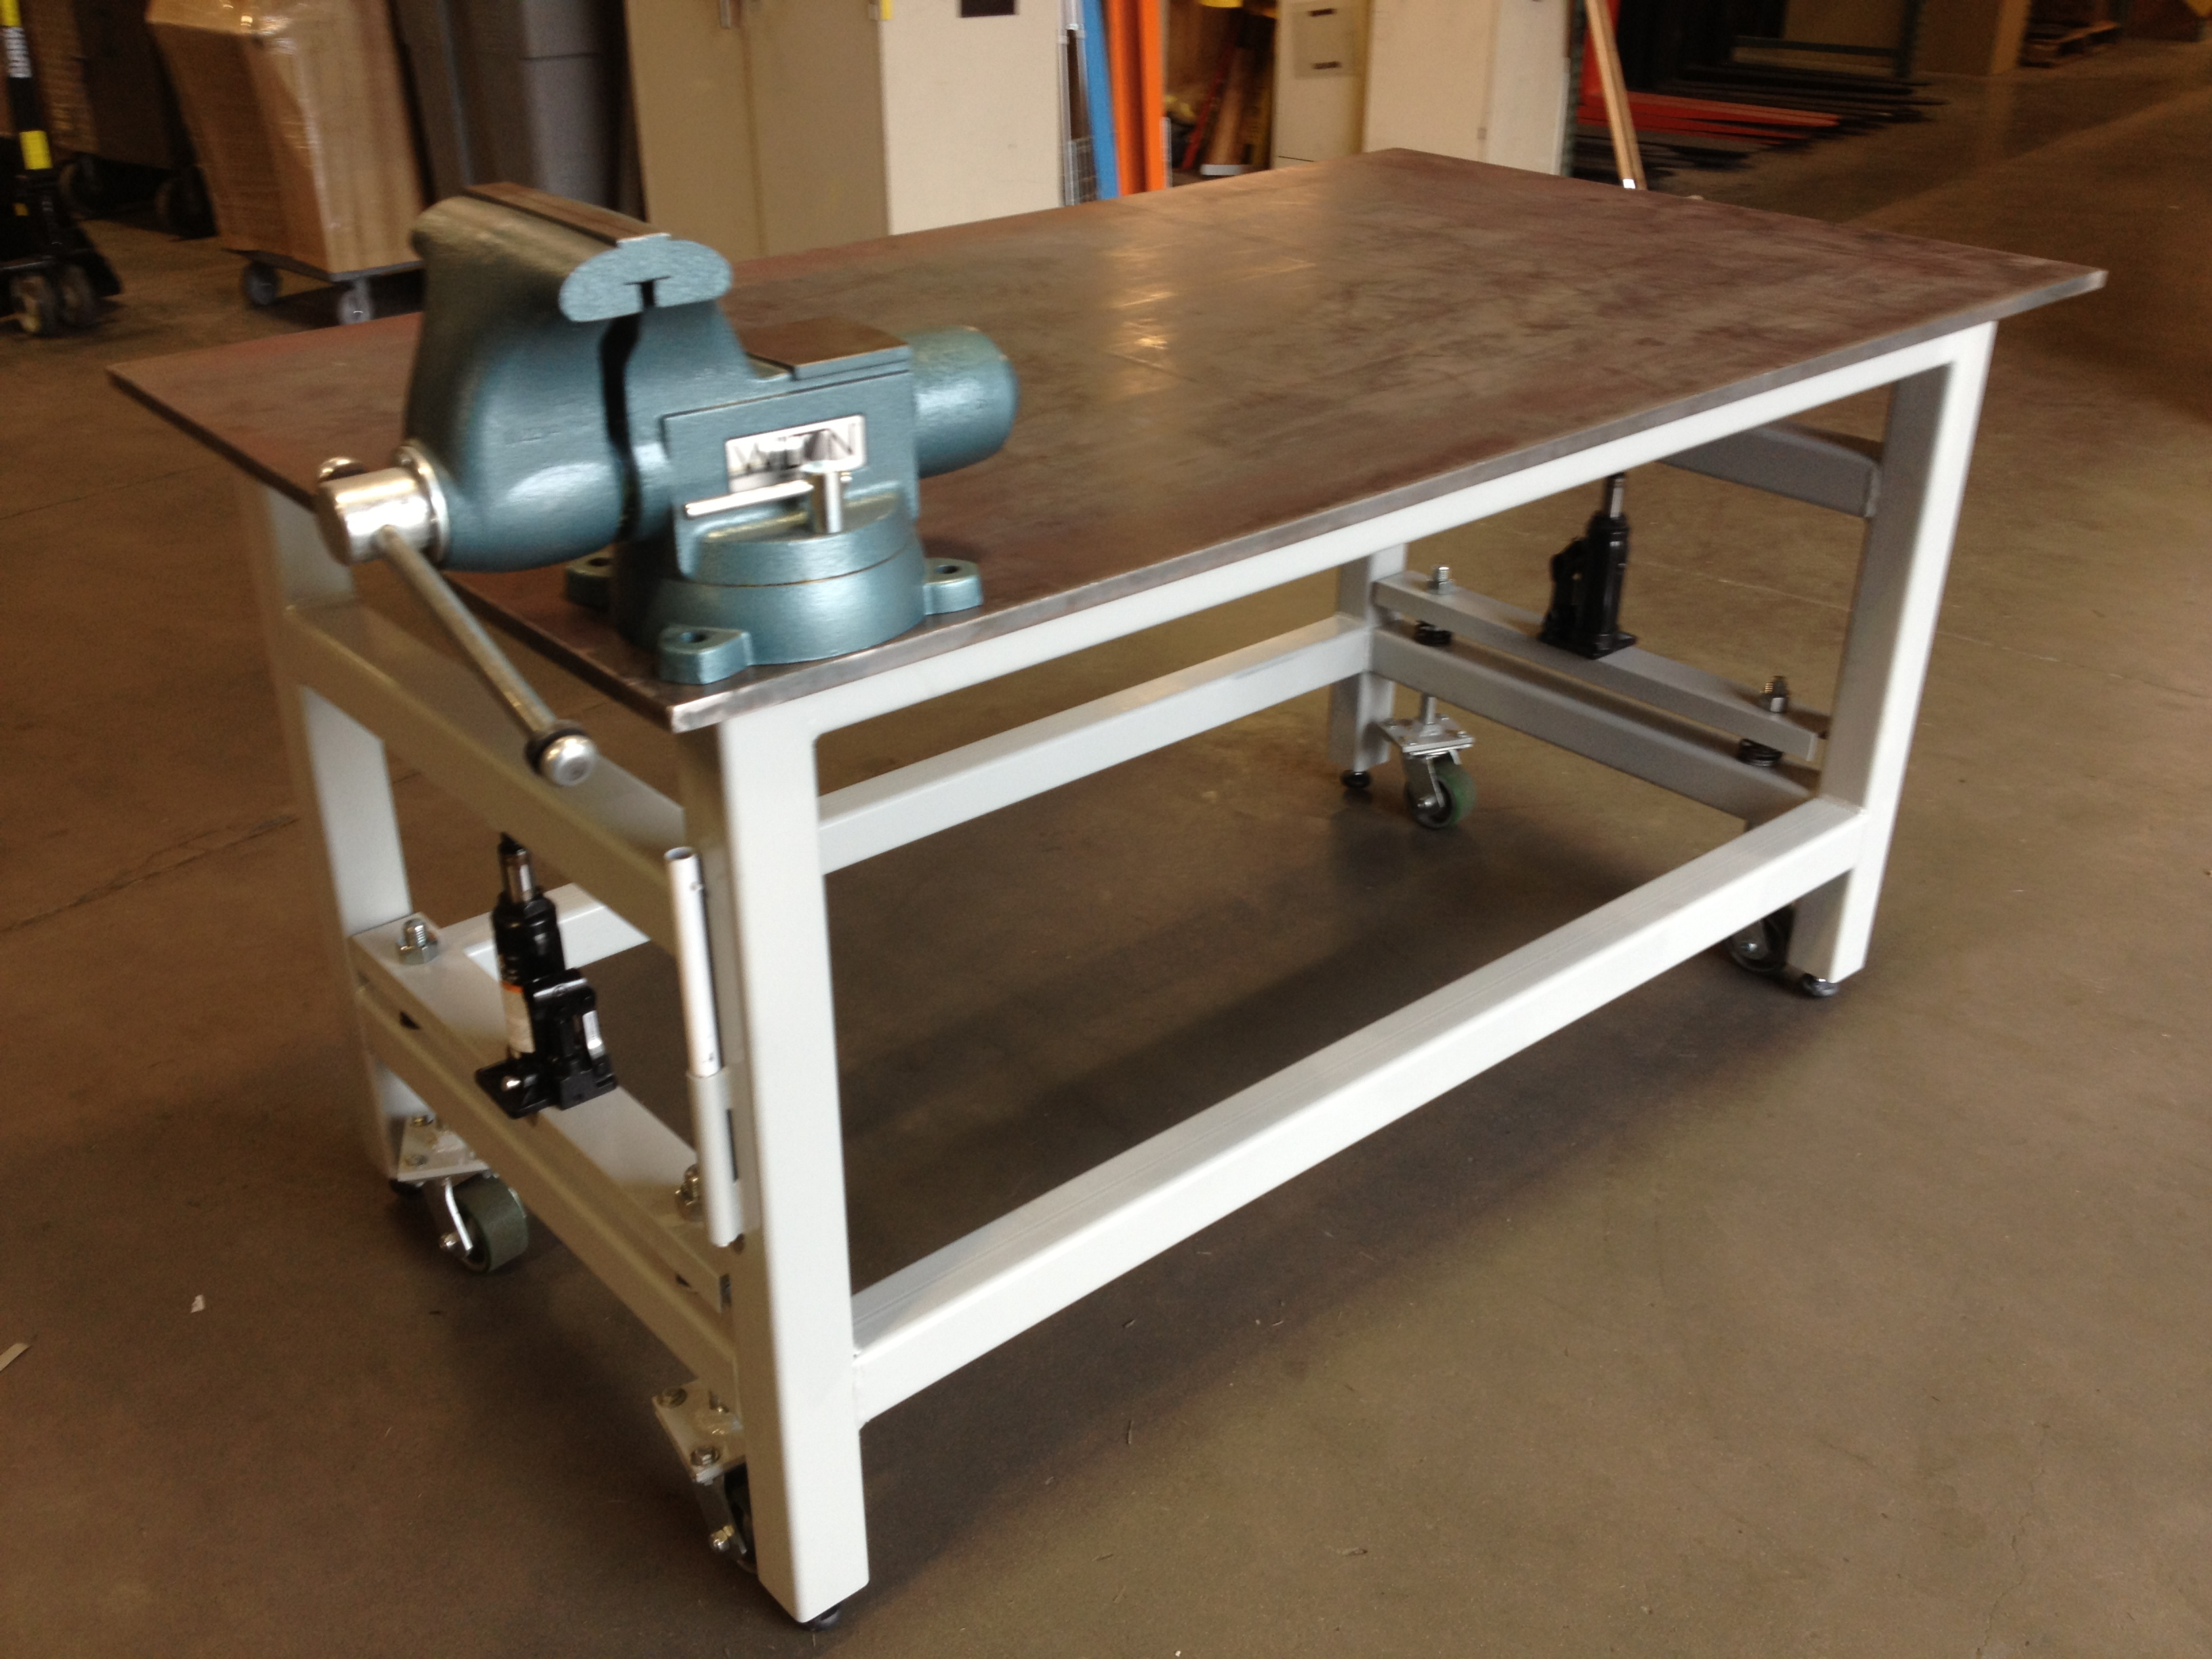 Download Diy Workbench Retractable Casters Pdf Diy Wood Mantel Diywoodplans